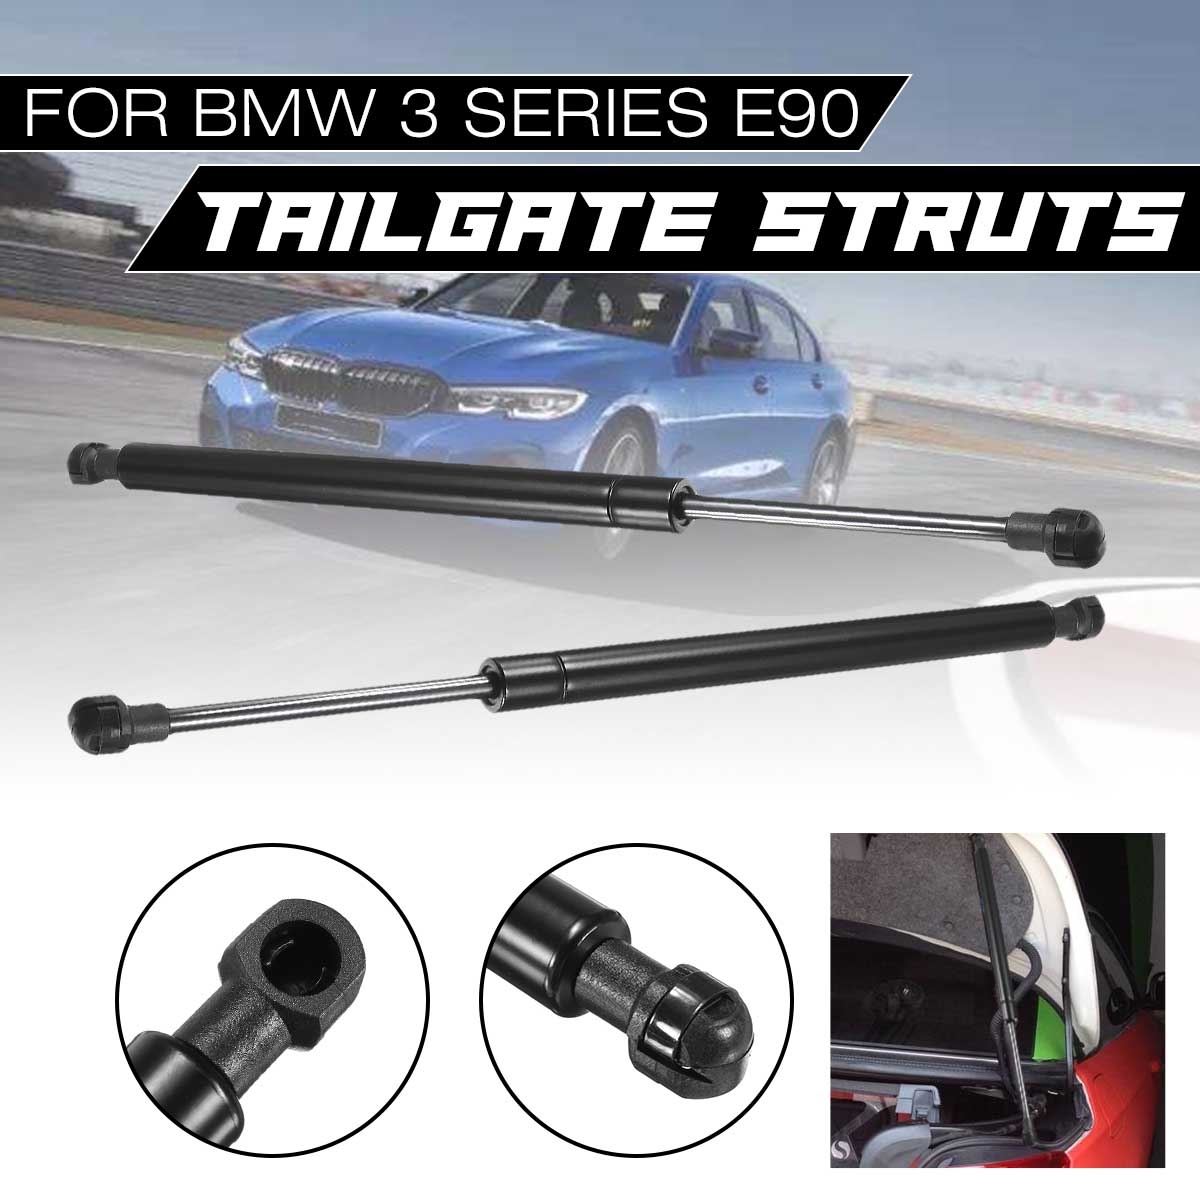 2X for BMW 3 Series E90 Tailgate Trunk Gas Spring Hood Lift Supports Strut Shock 512470606232X for BMW 3 Series E90 Tailgate Trunk Gas Spring Hood Lift Supports Strut Shock 51247060623